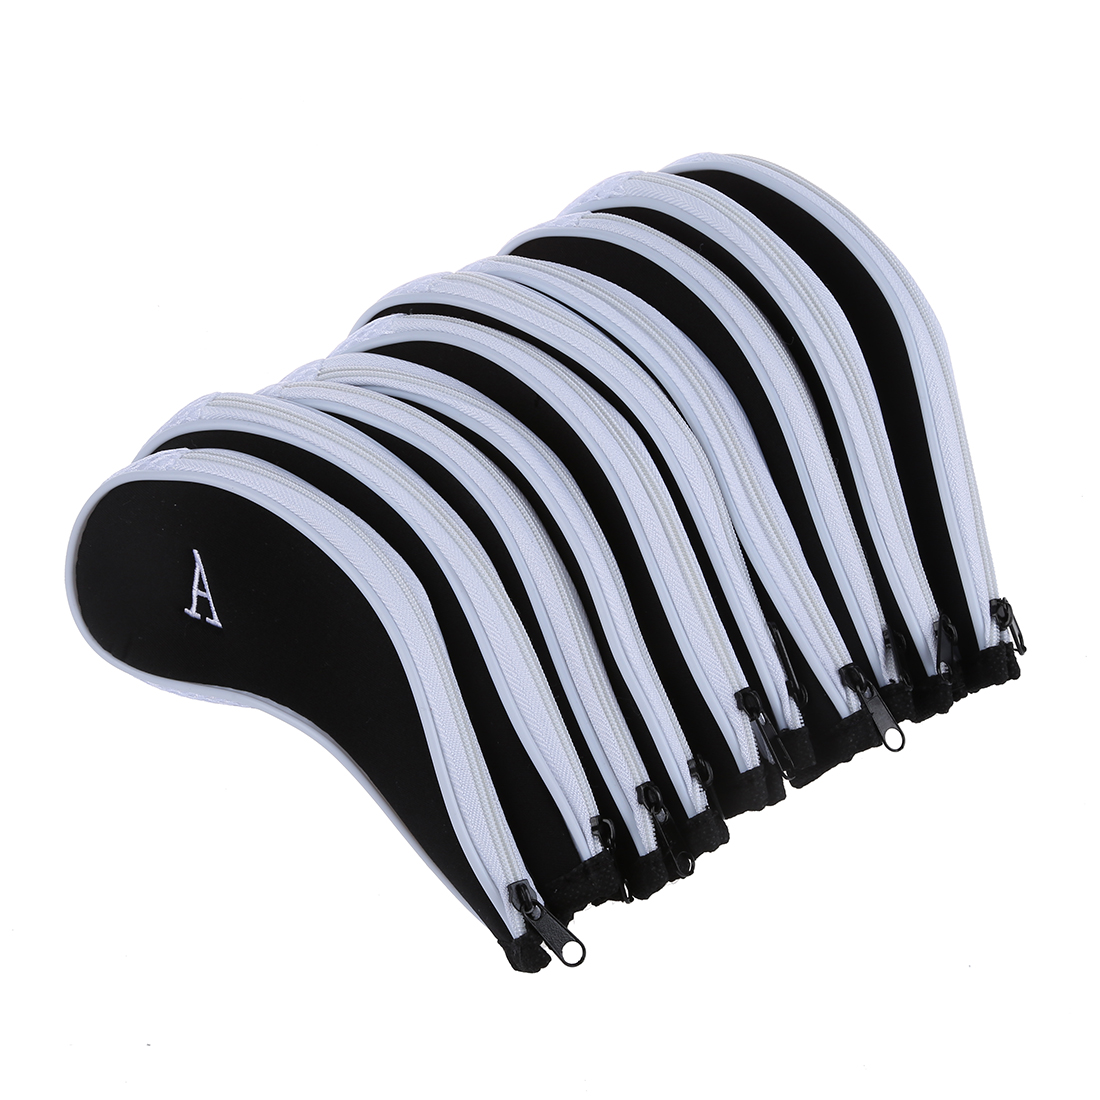 Wholesale! 10 pcs Golf Club Iron Putter Head Cover HeadCovers Protect Set Fit for All Brands and Sizes Iron Golf Club Head White